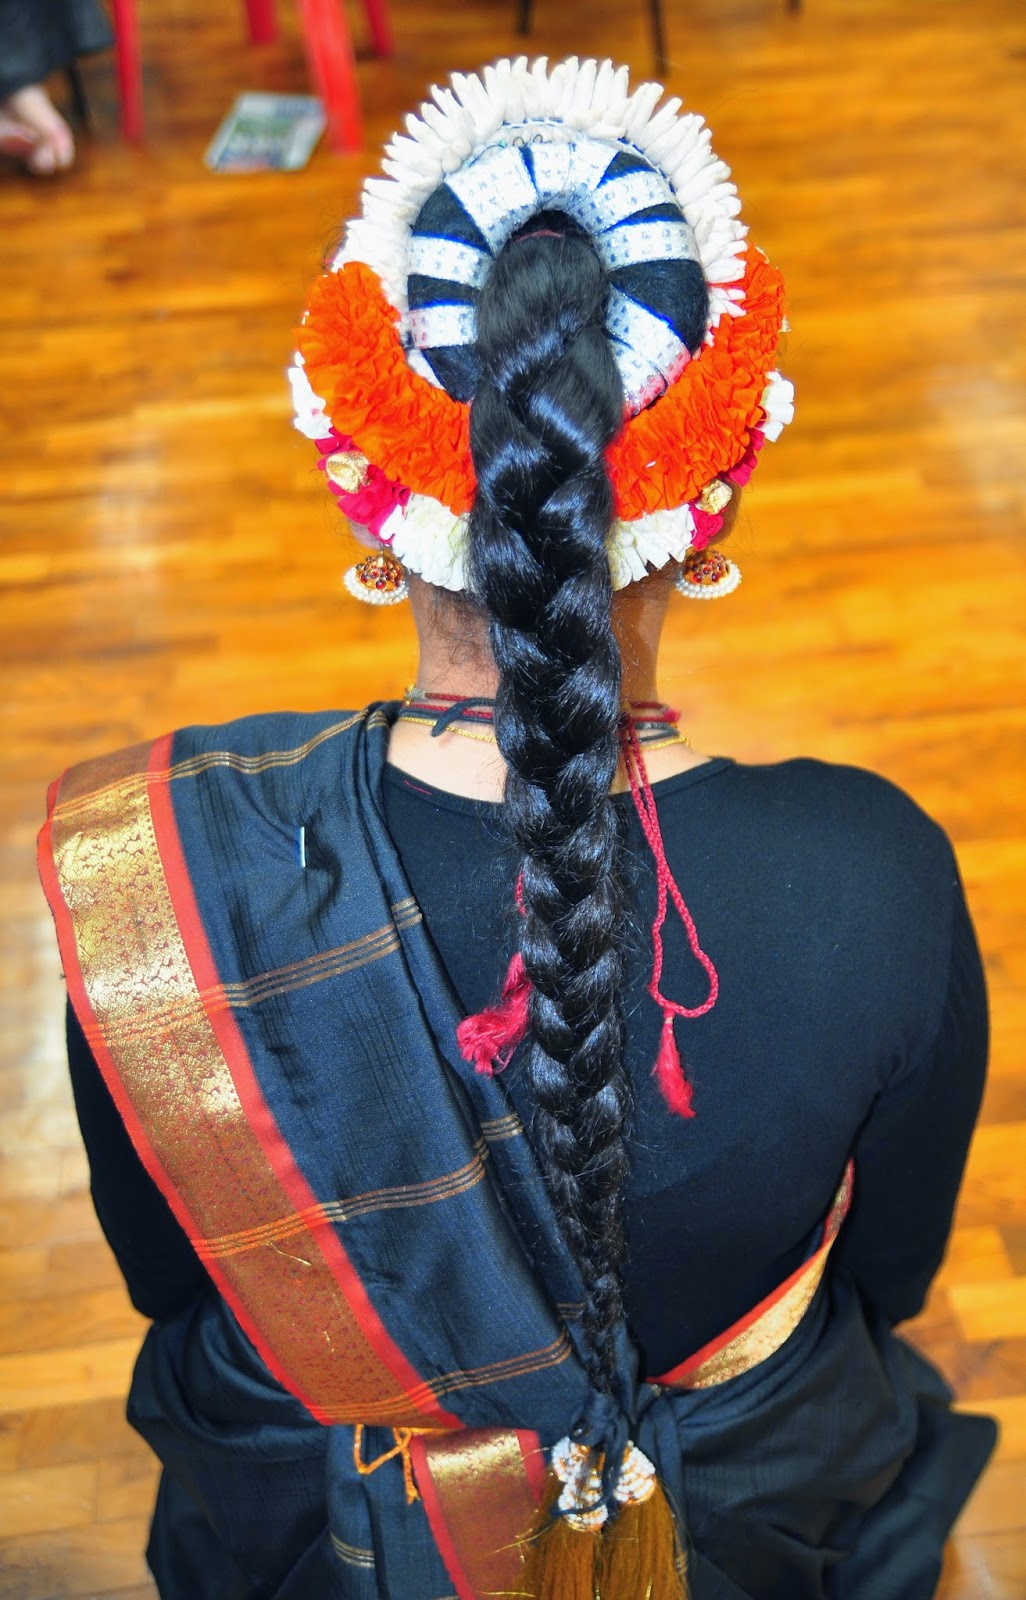 bharatanatyam hair style pushpaarpanam different hair styles and 8134 | DSC 0019